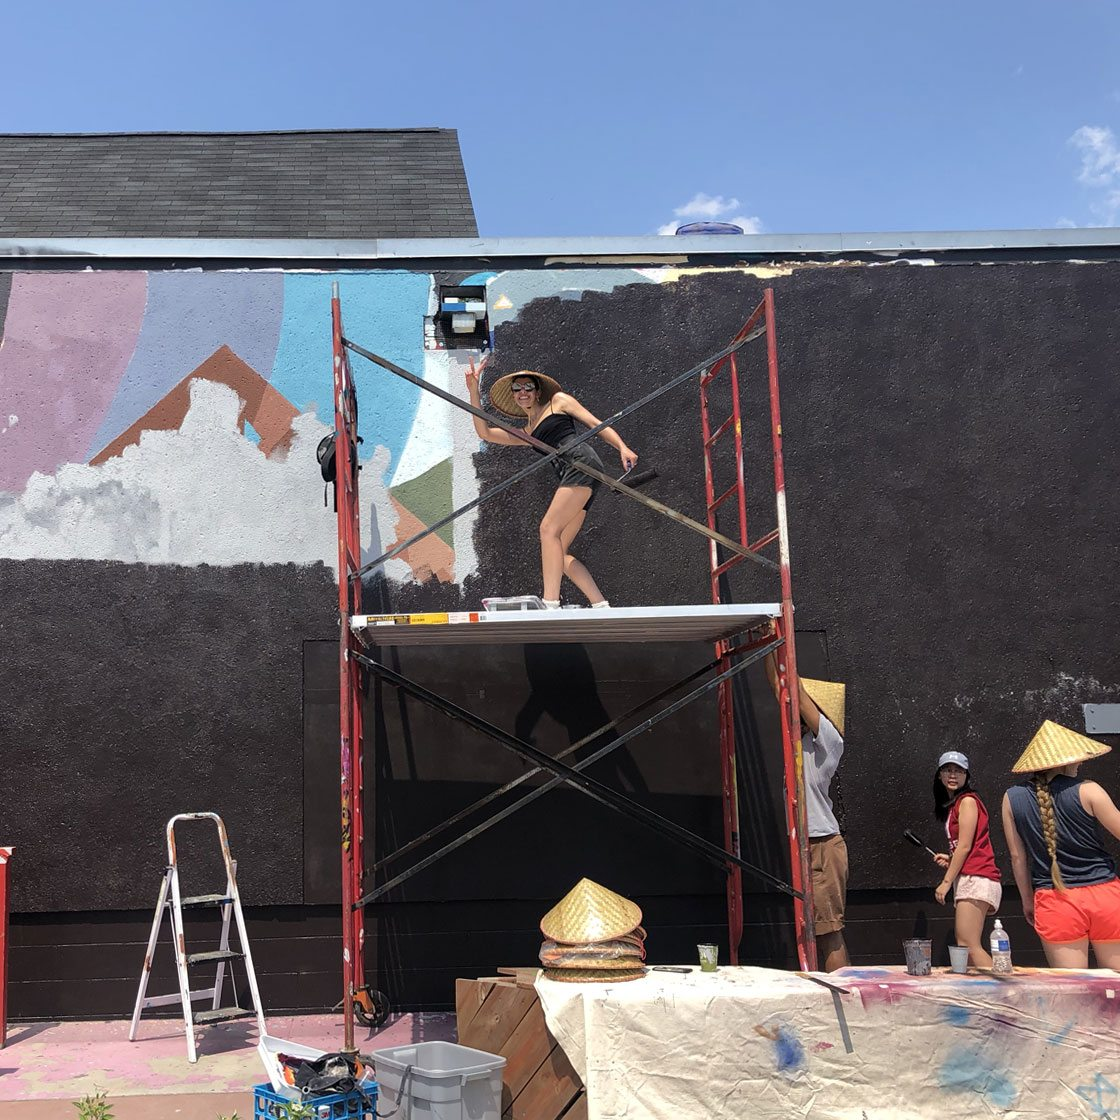 Several people painting a wall with a painting in progress. Some are standing on scaffolding.